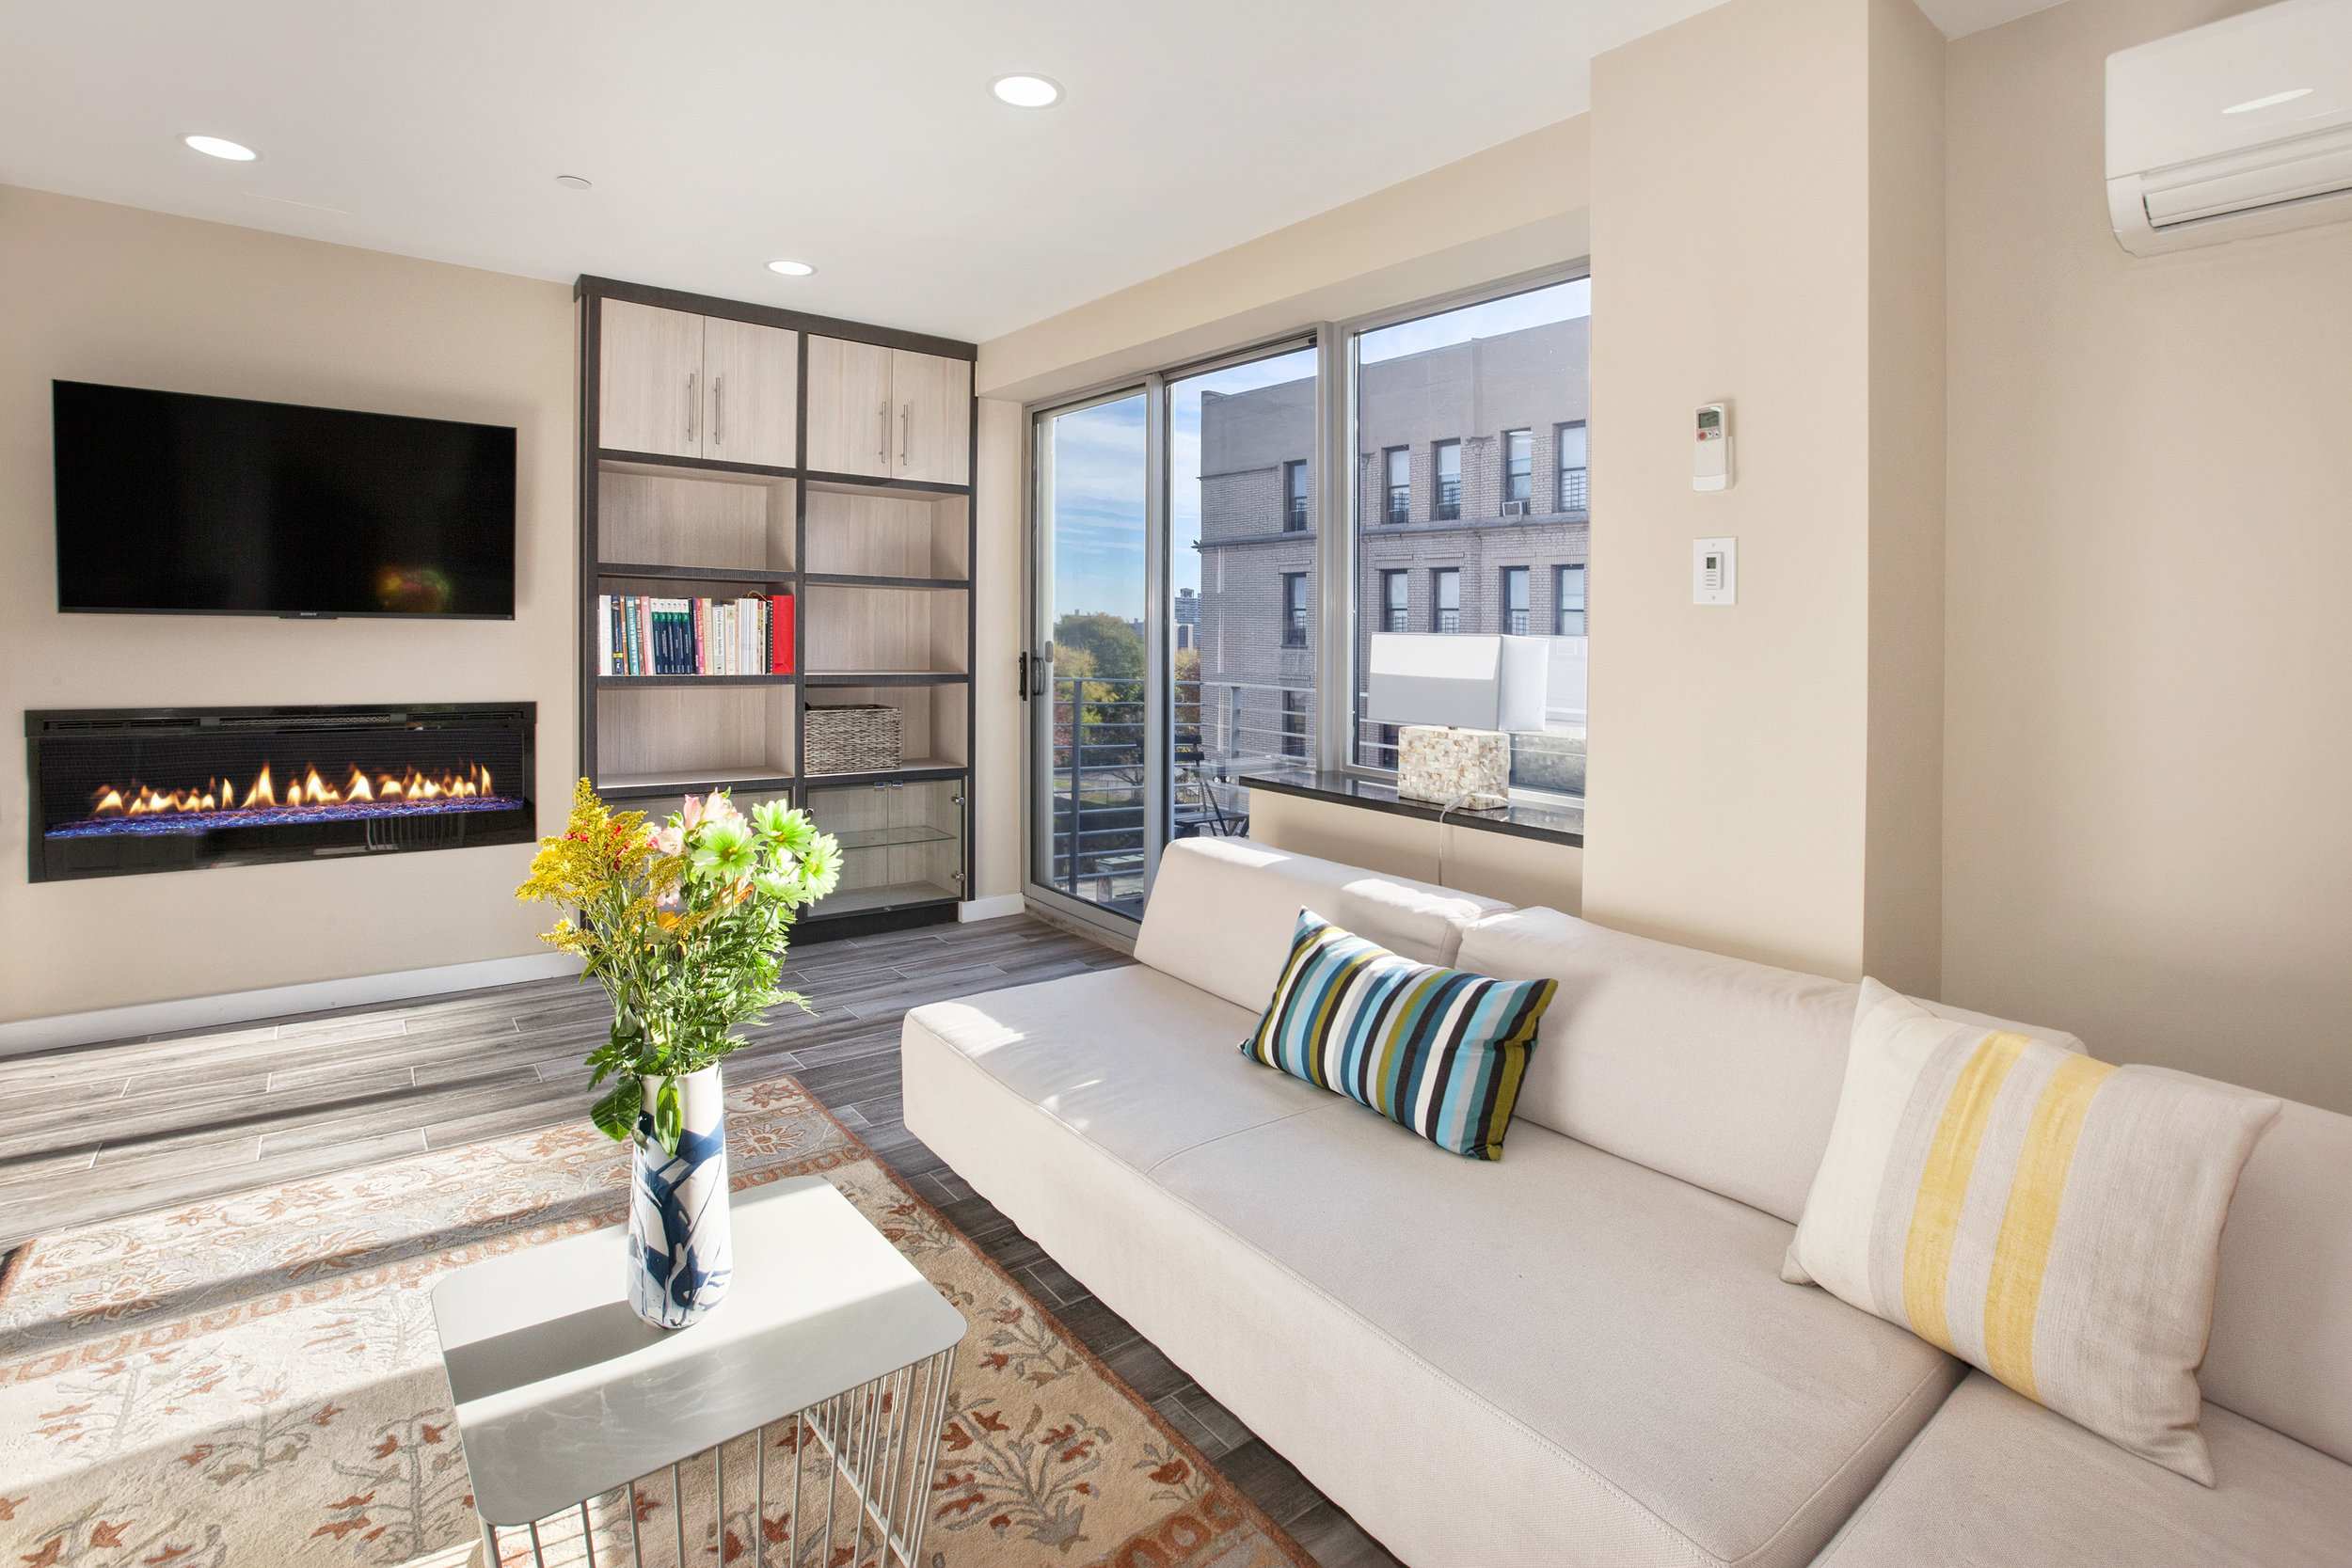 2360 Amsterdam Ave. #6A - $895,000